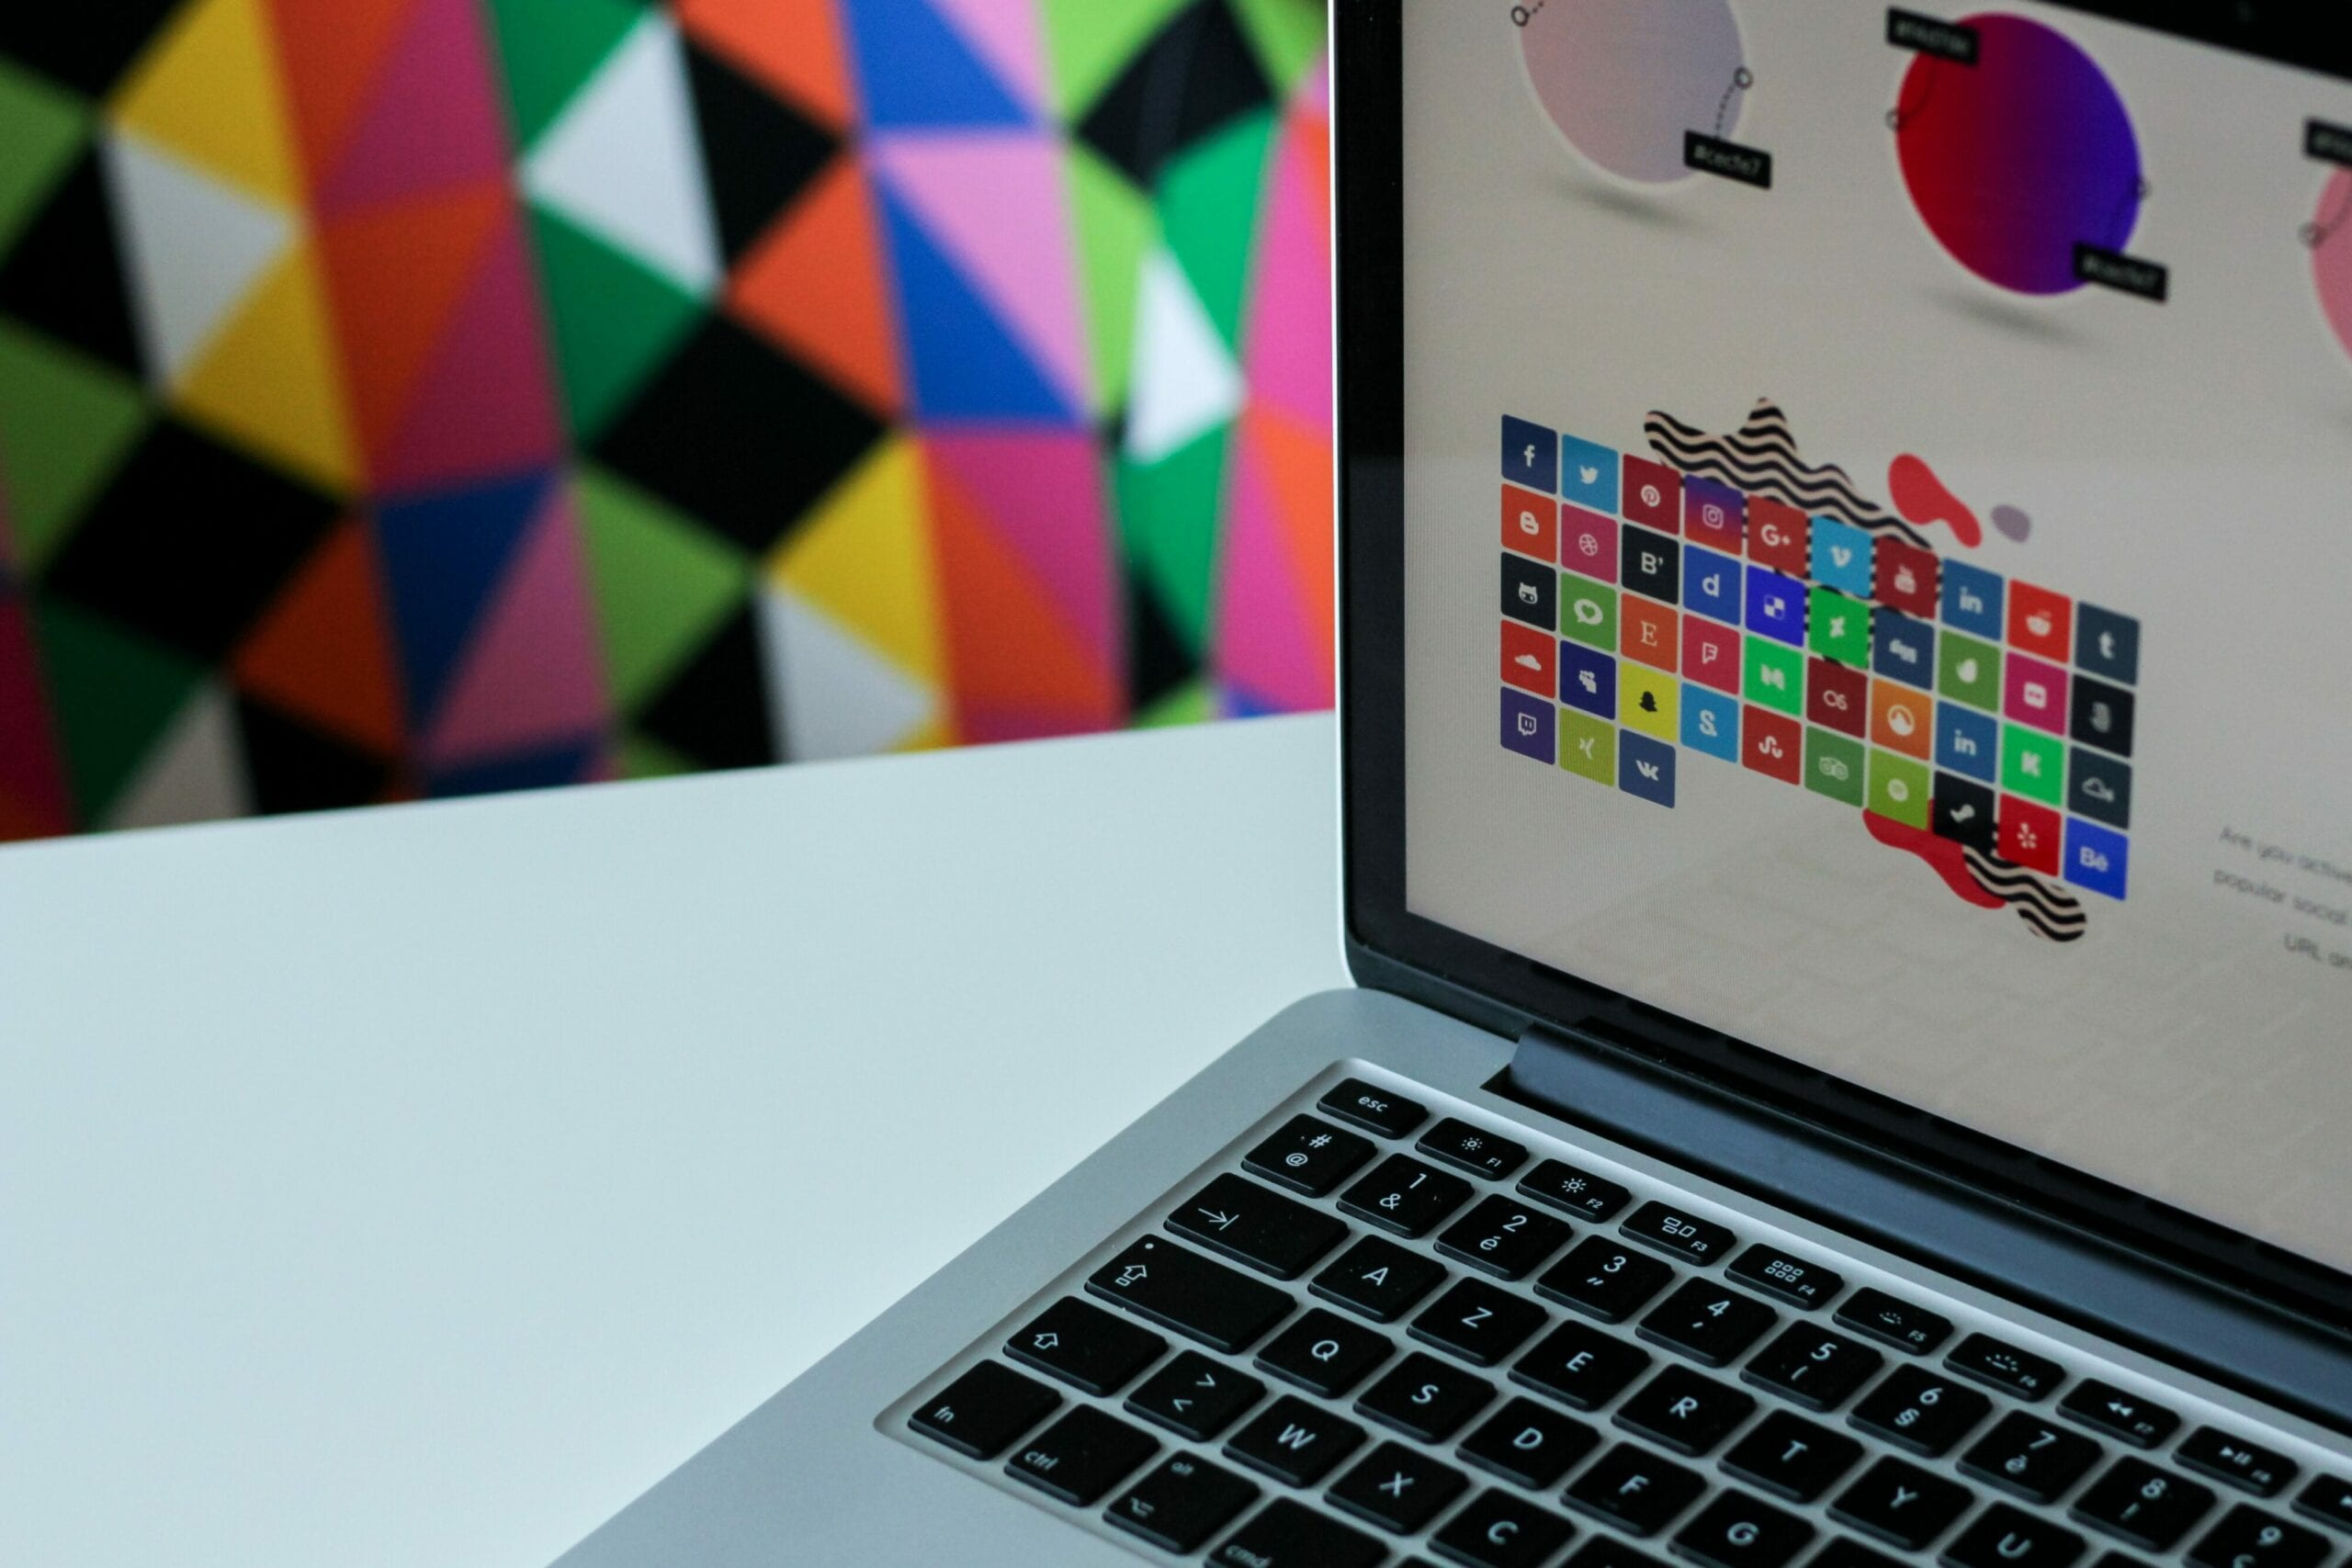 A laptop with a brightly-colored design on the screen and in the background